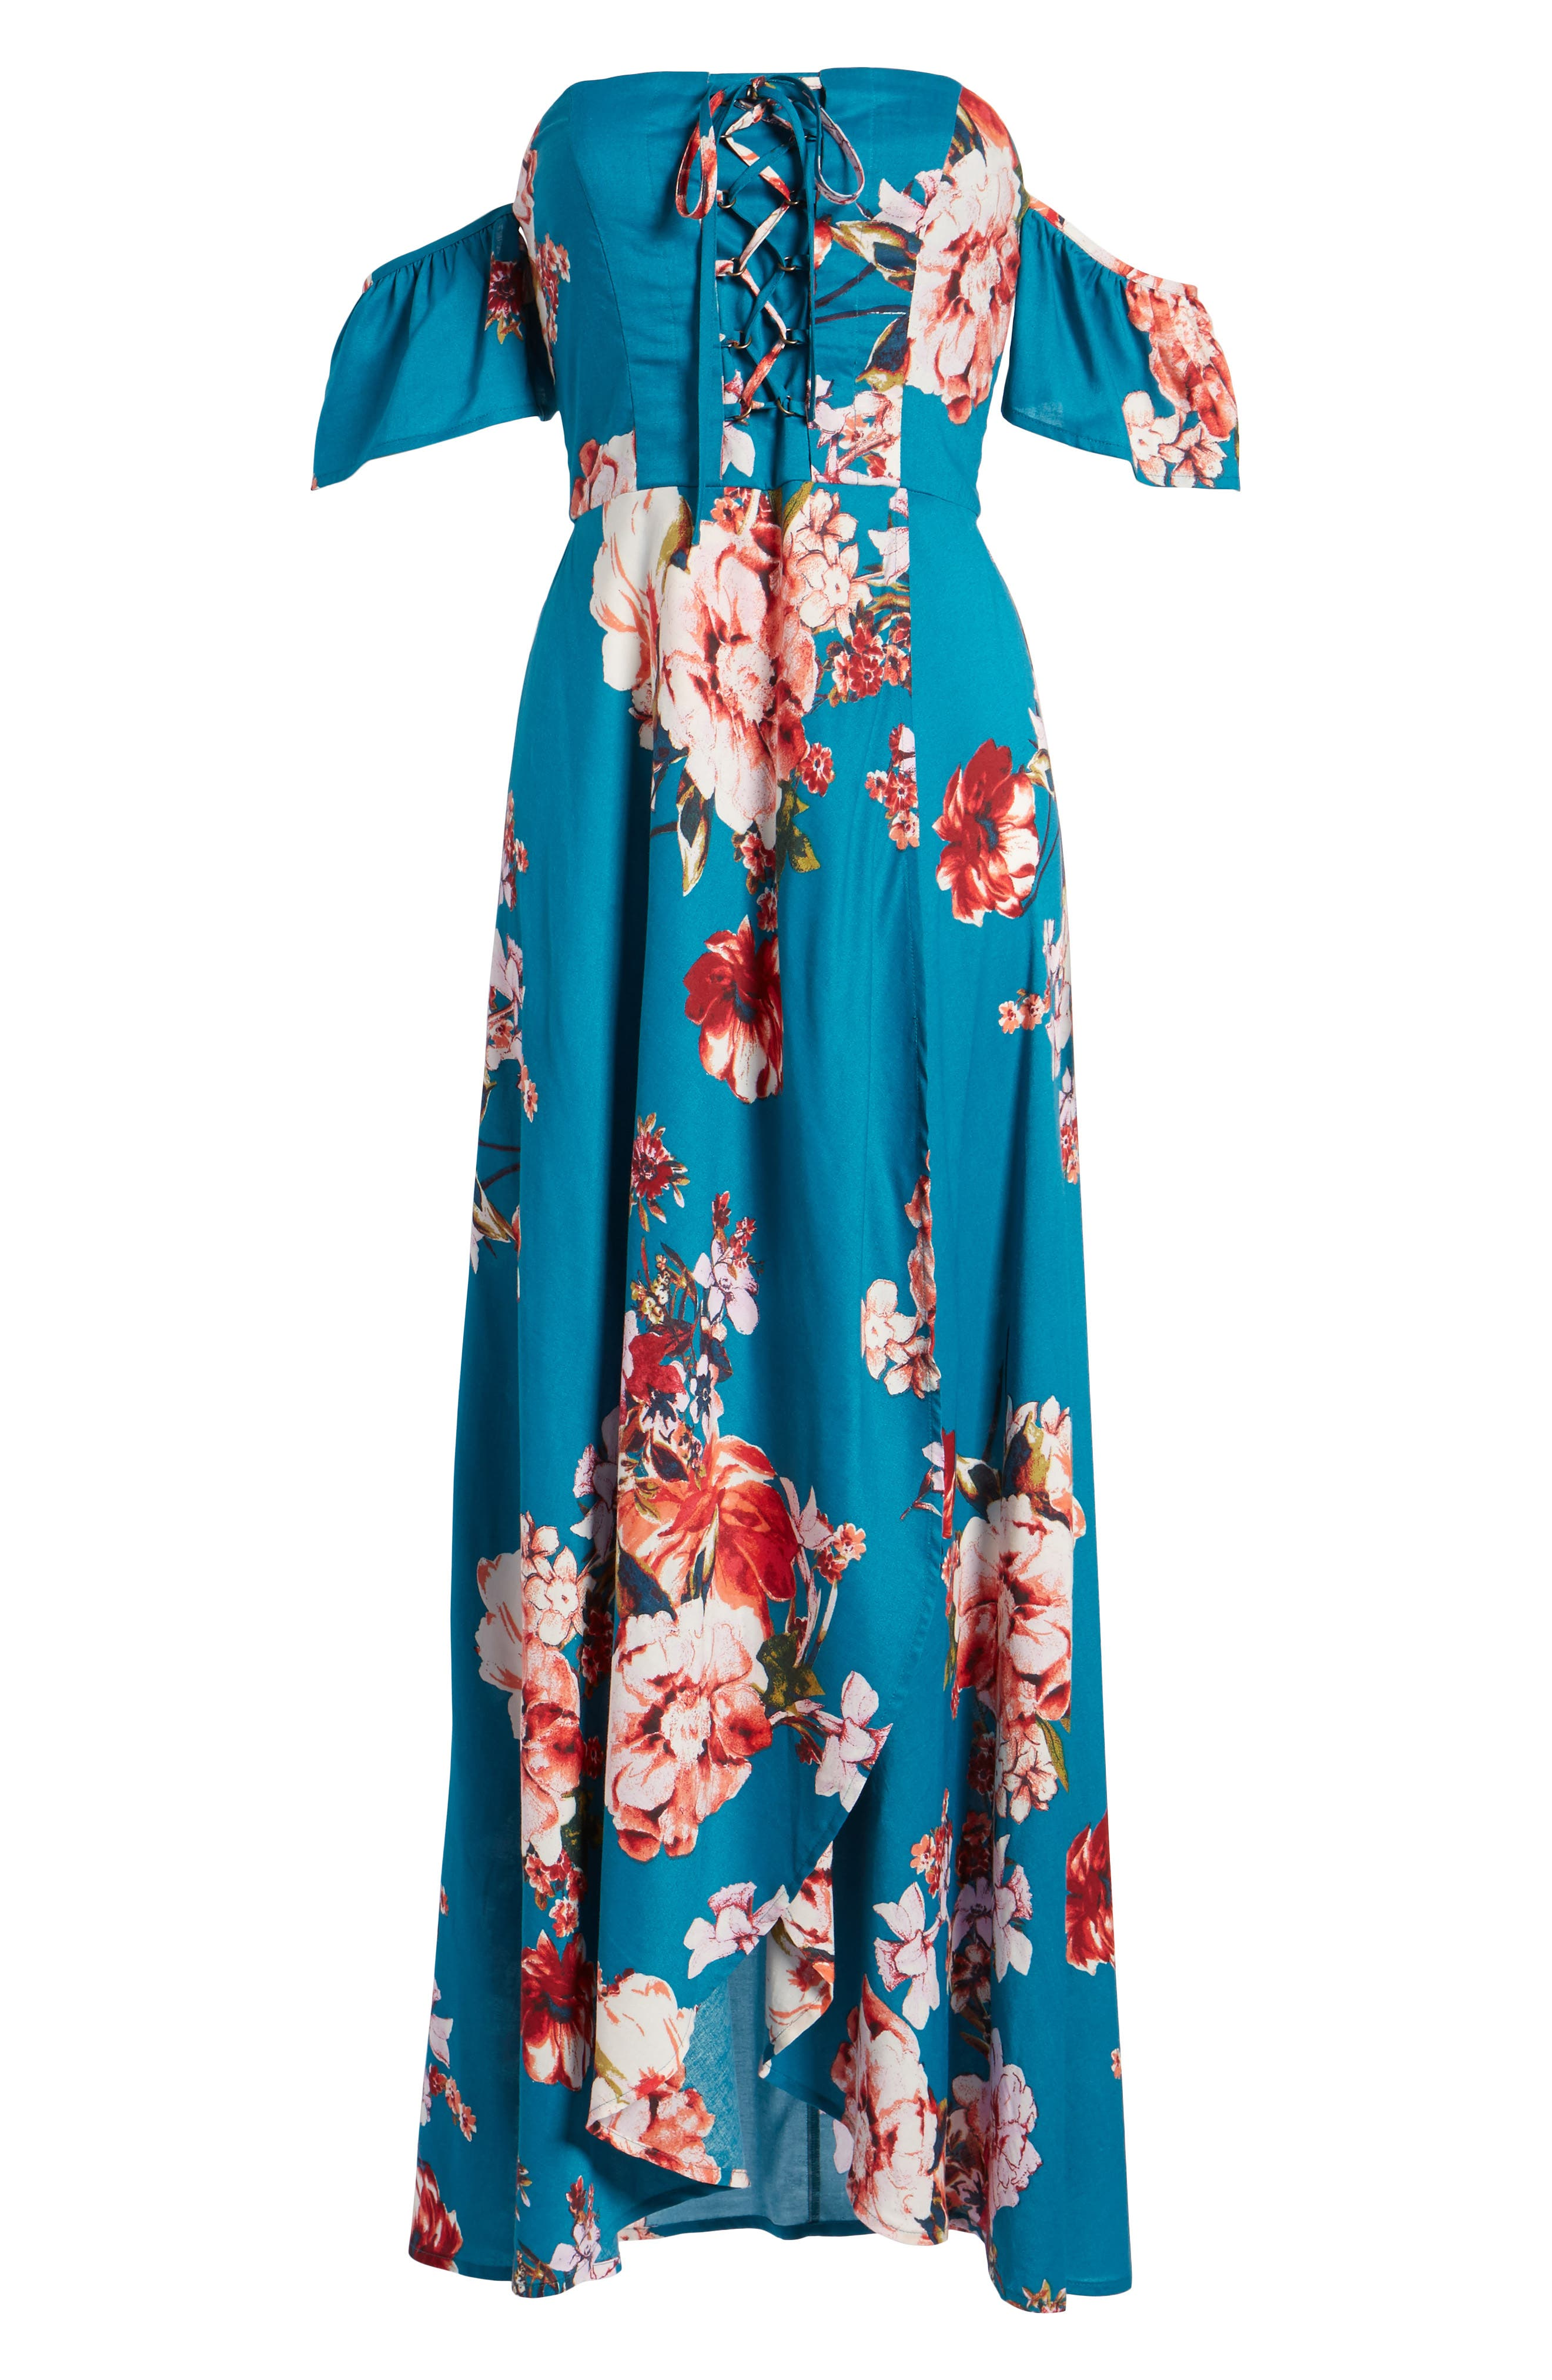 Lace Up Cold Shoulder Maxi Dress,                             Alternate thumbnail 6, color,                             Teal/ Peach